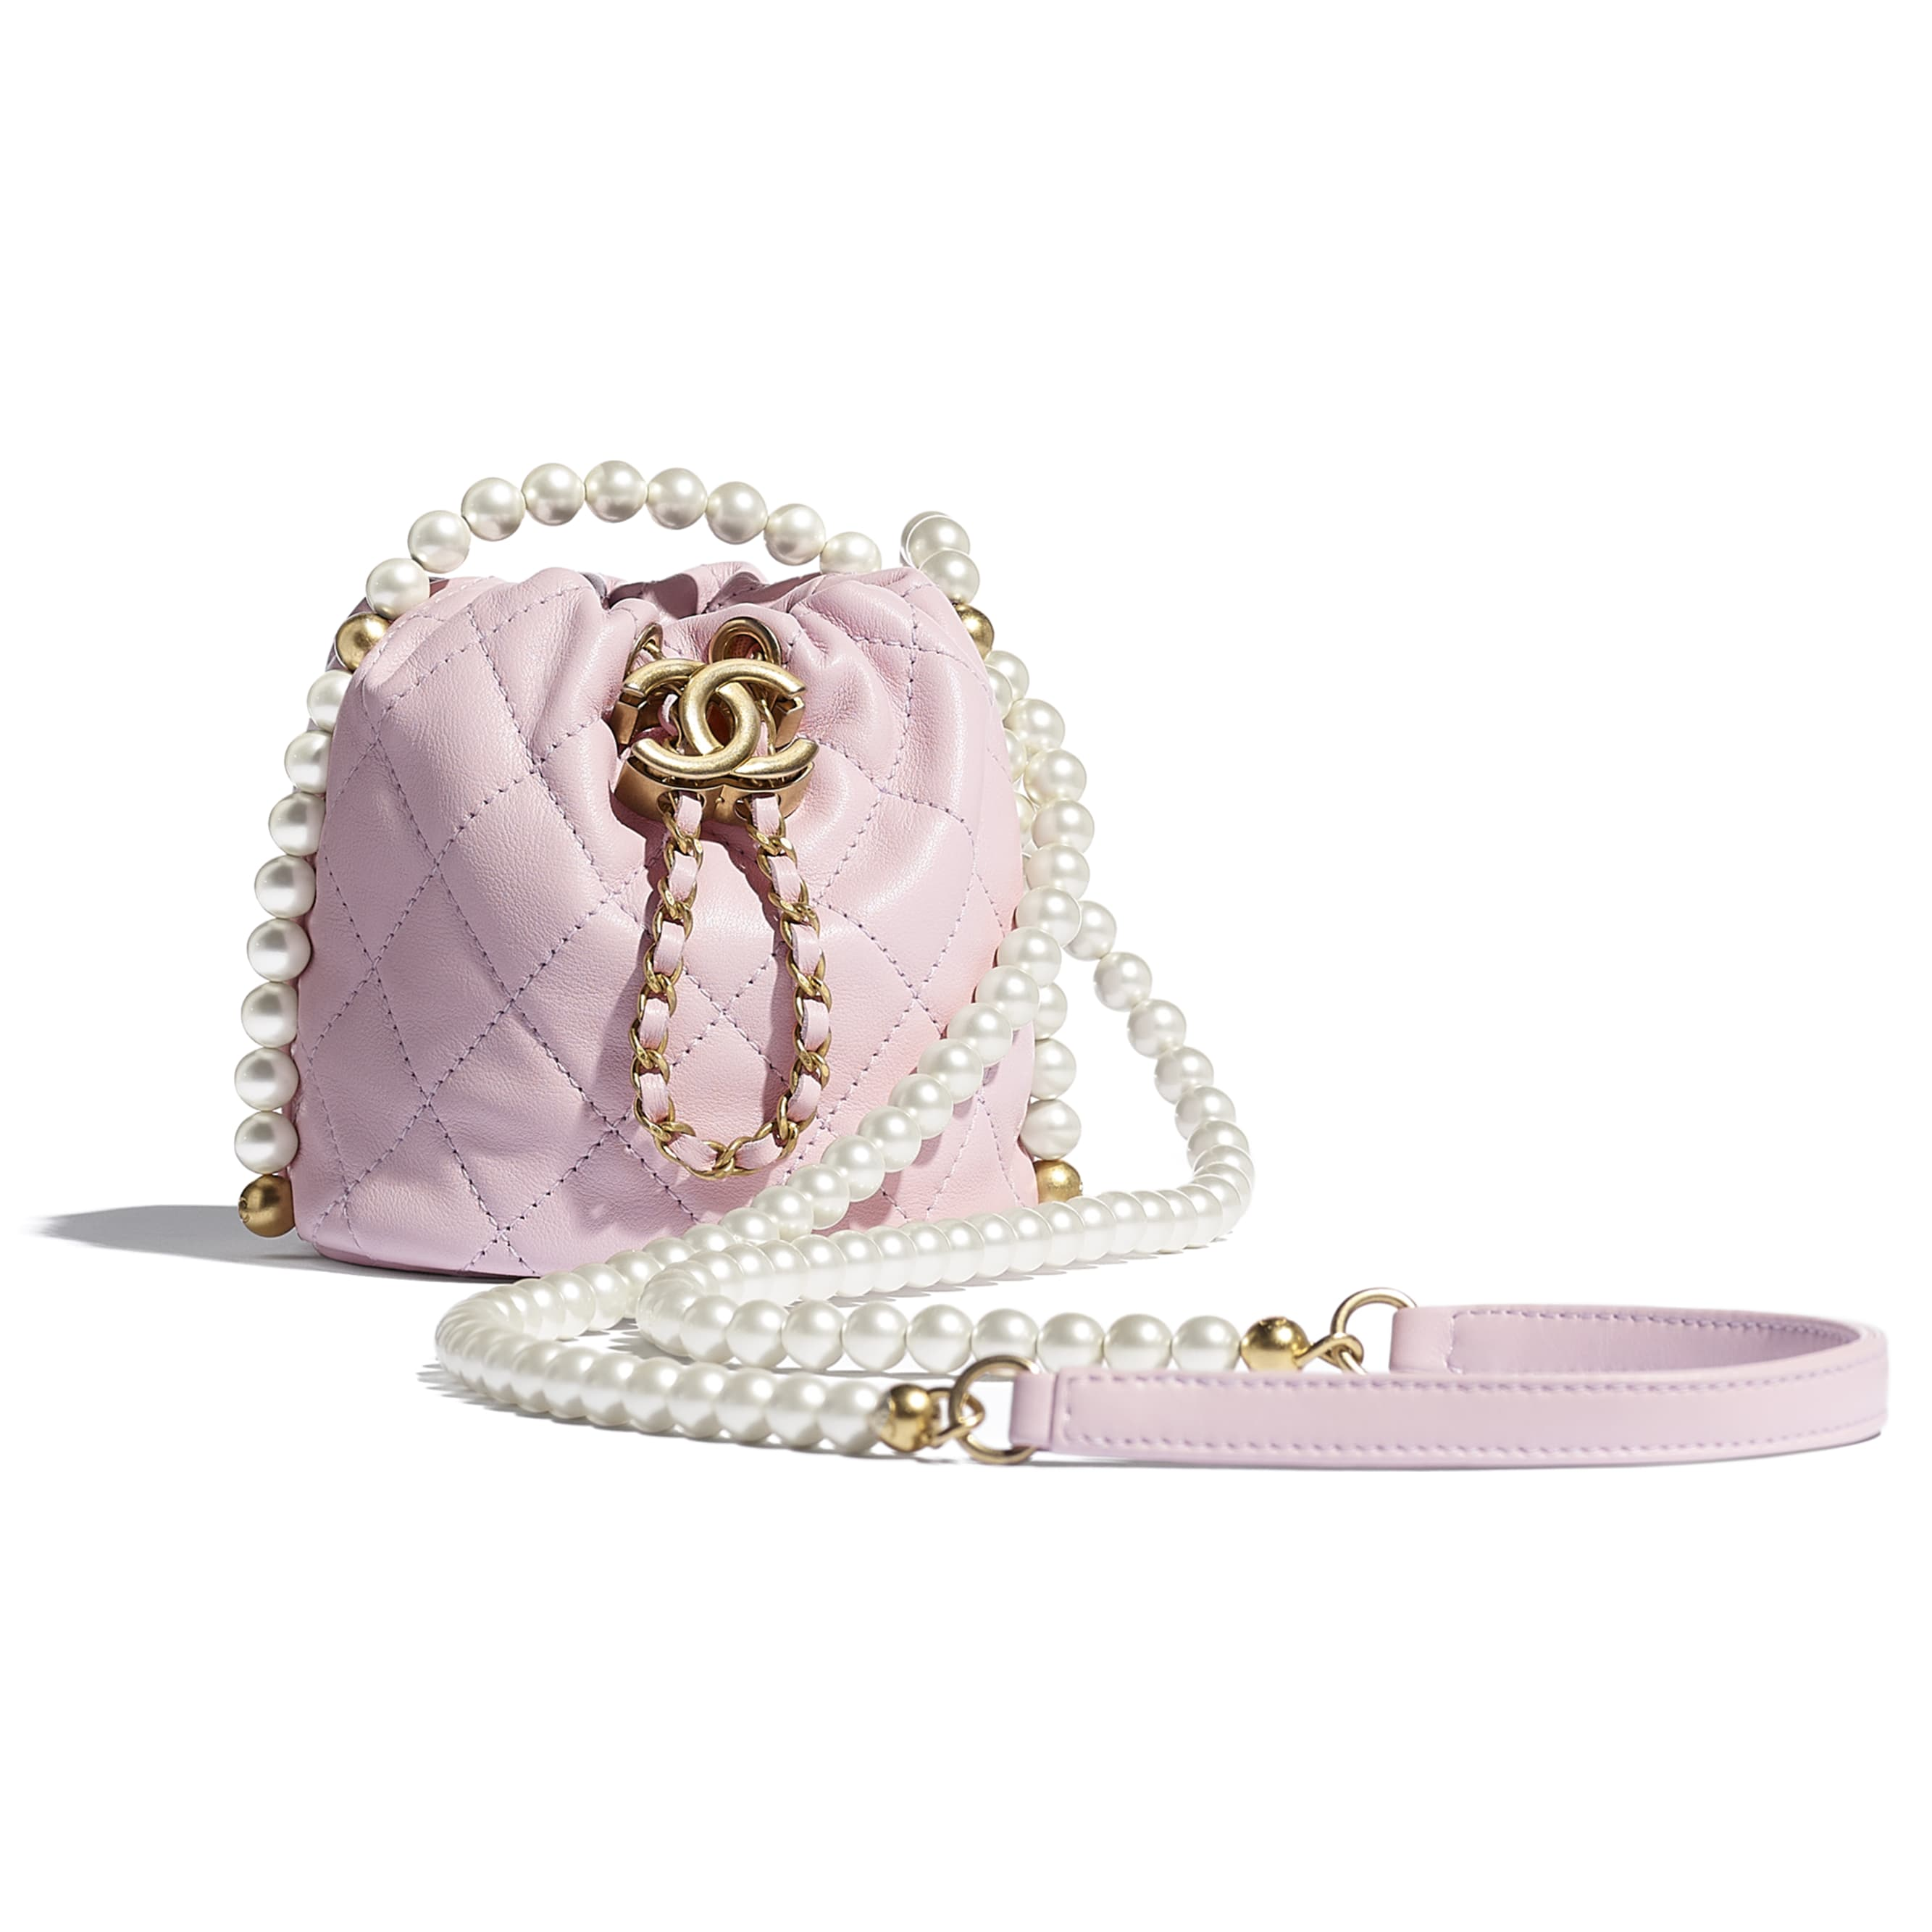 Mini Drawstring Bag - Light Pink - Calfskin, Imitation Pearls & Gold-Tone Metal - CHANEL - Default view - see standard sized version